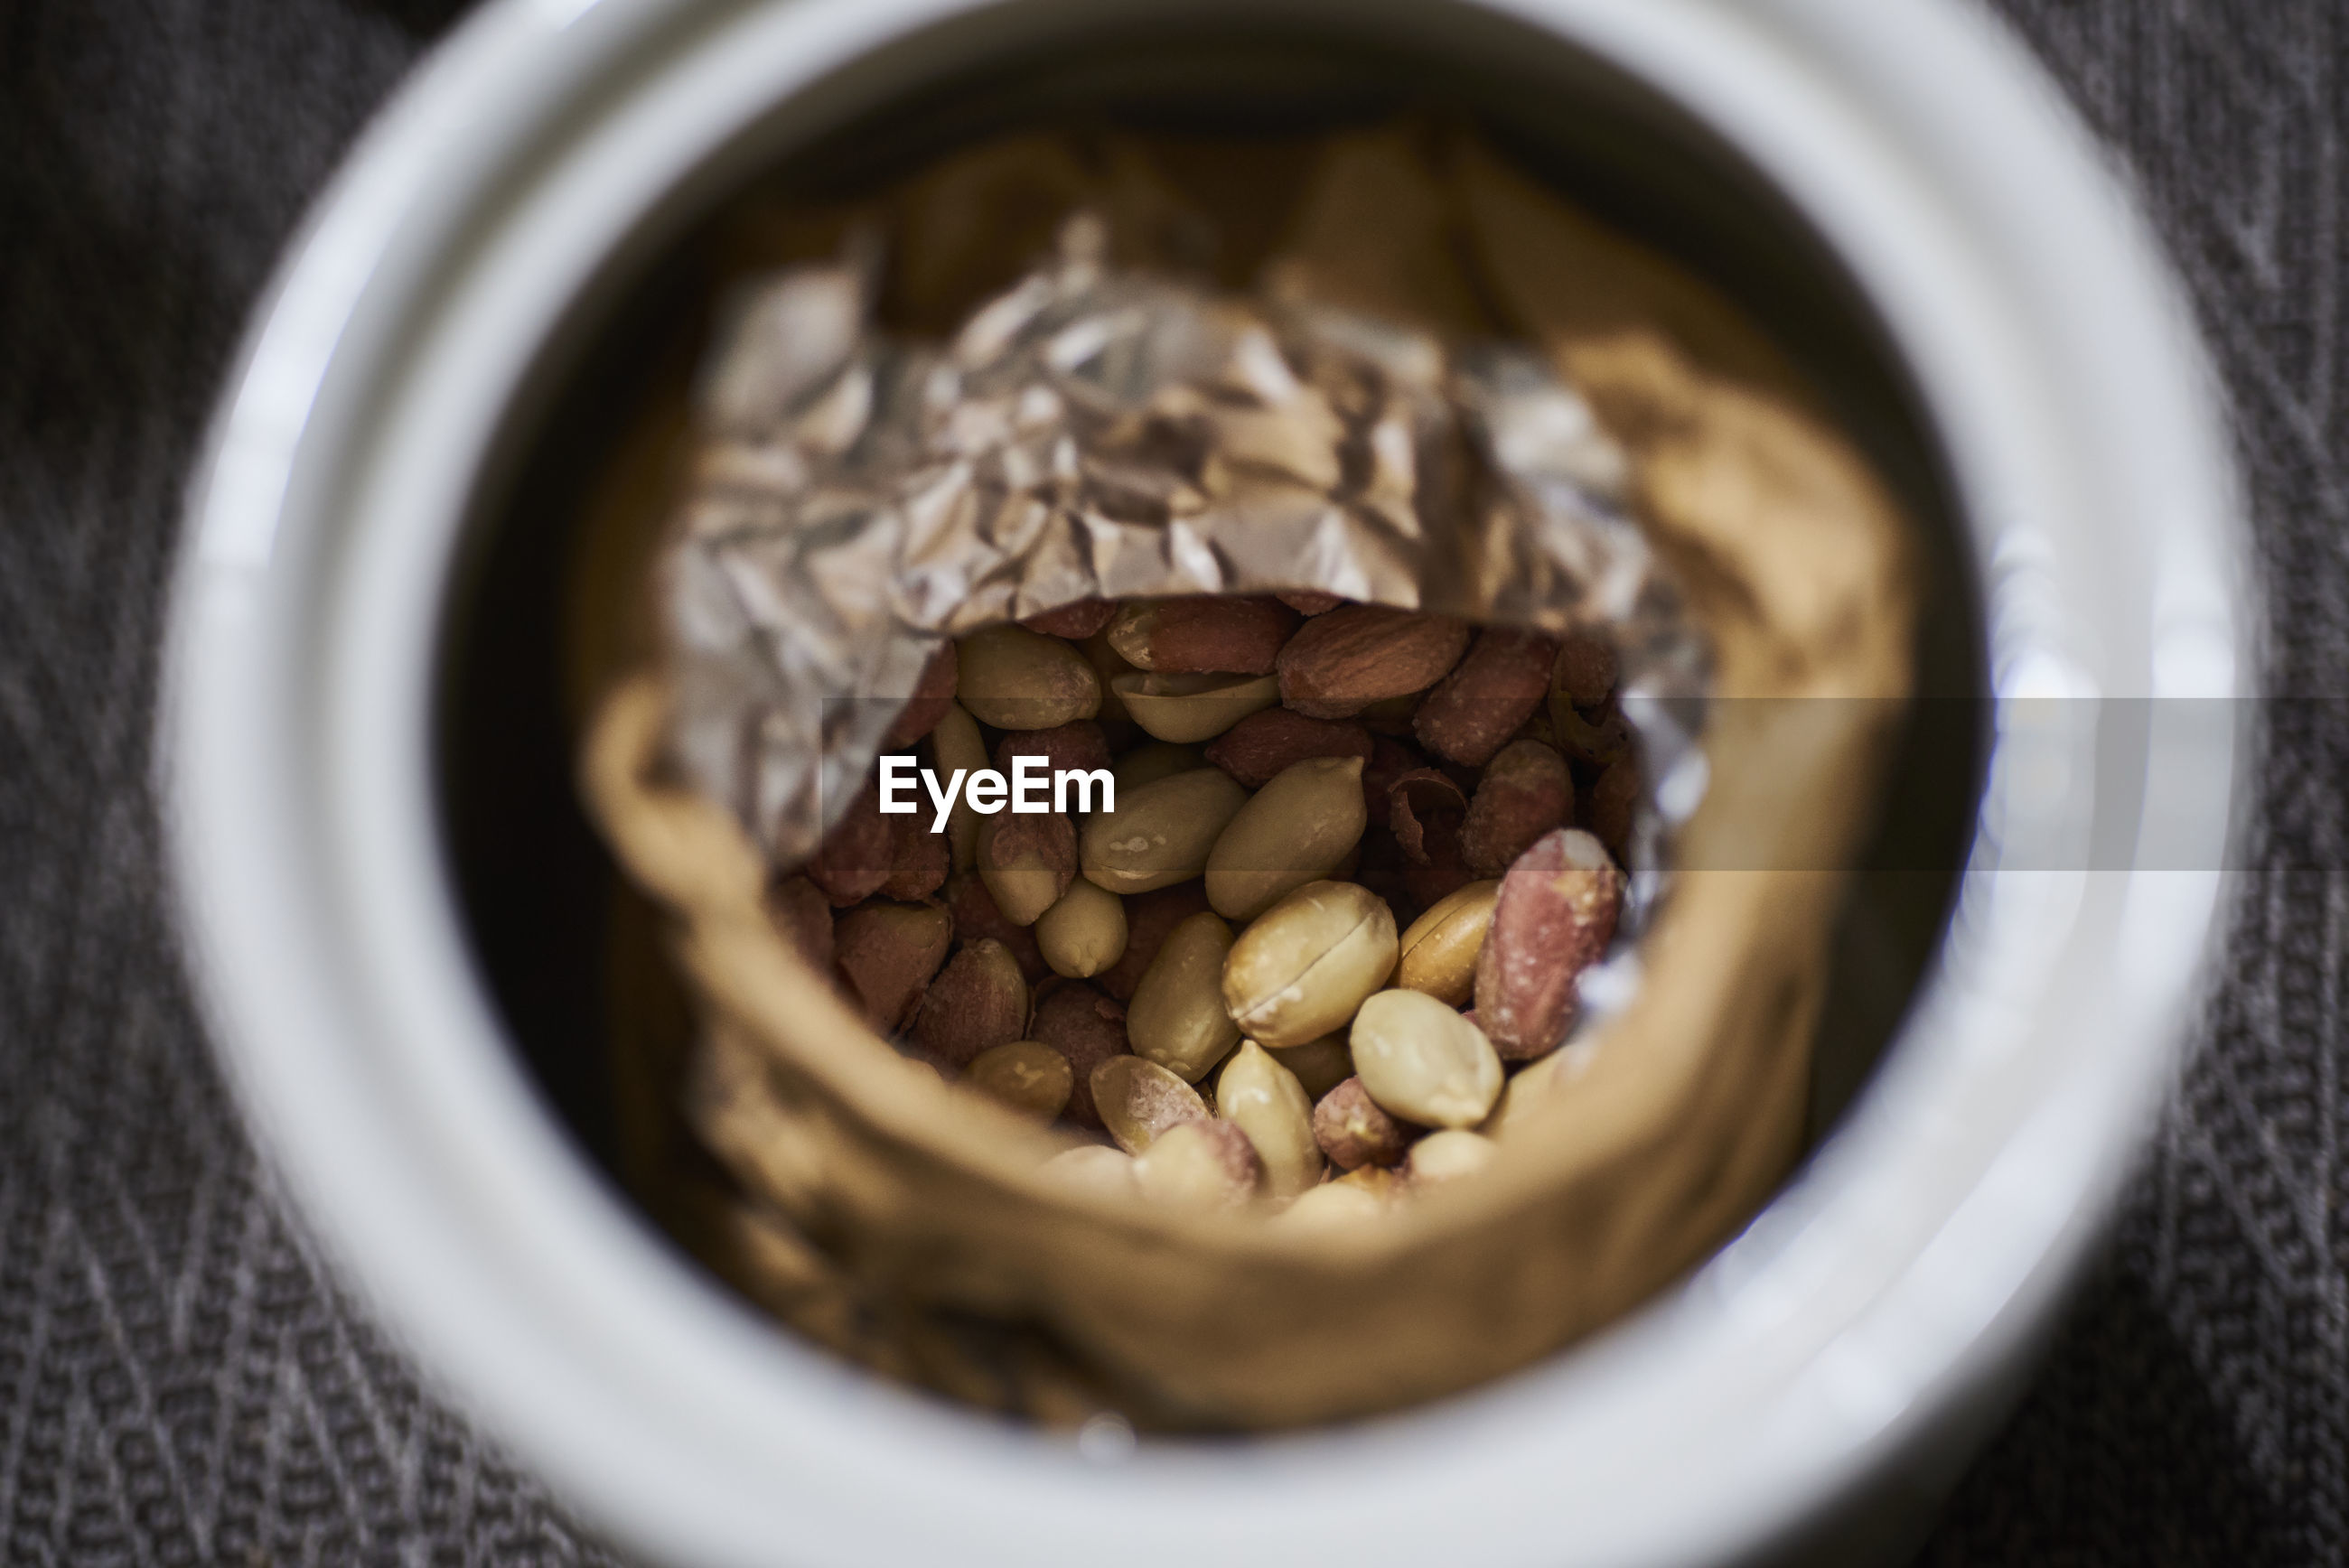 HIGH ANGLE VIEW OF COFFEE BEANS IN GLASS ON TABLE